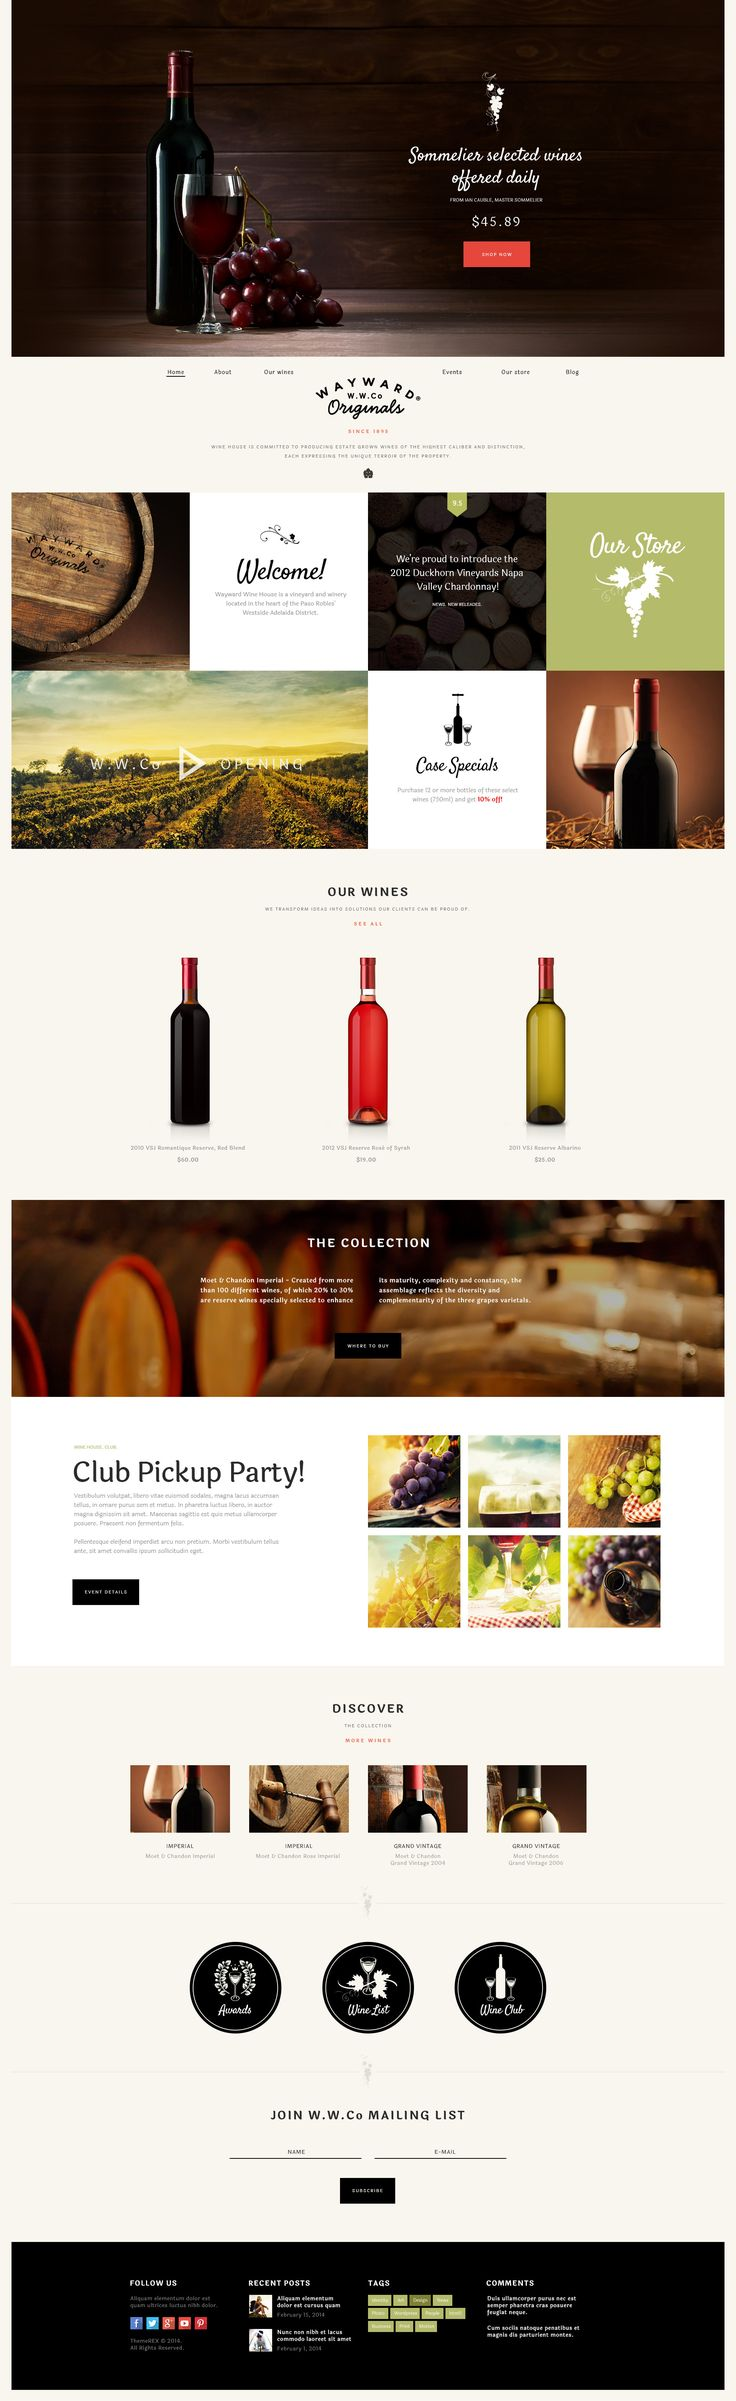 Wine House is a WordPress theme ideal for winery websites, online wine shops or wine restaurants. If you seek to build a website related to agritourism, Wine House will perfectly fits for it too.